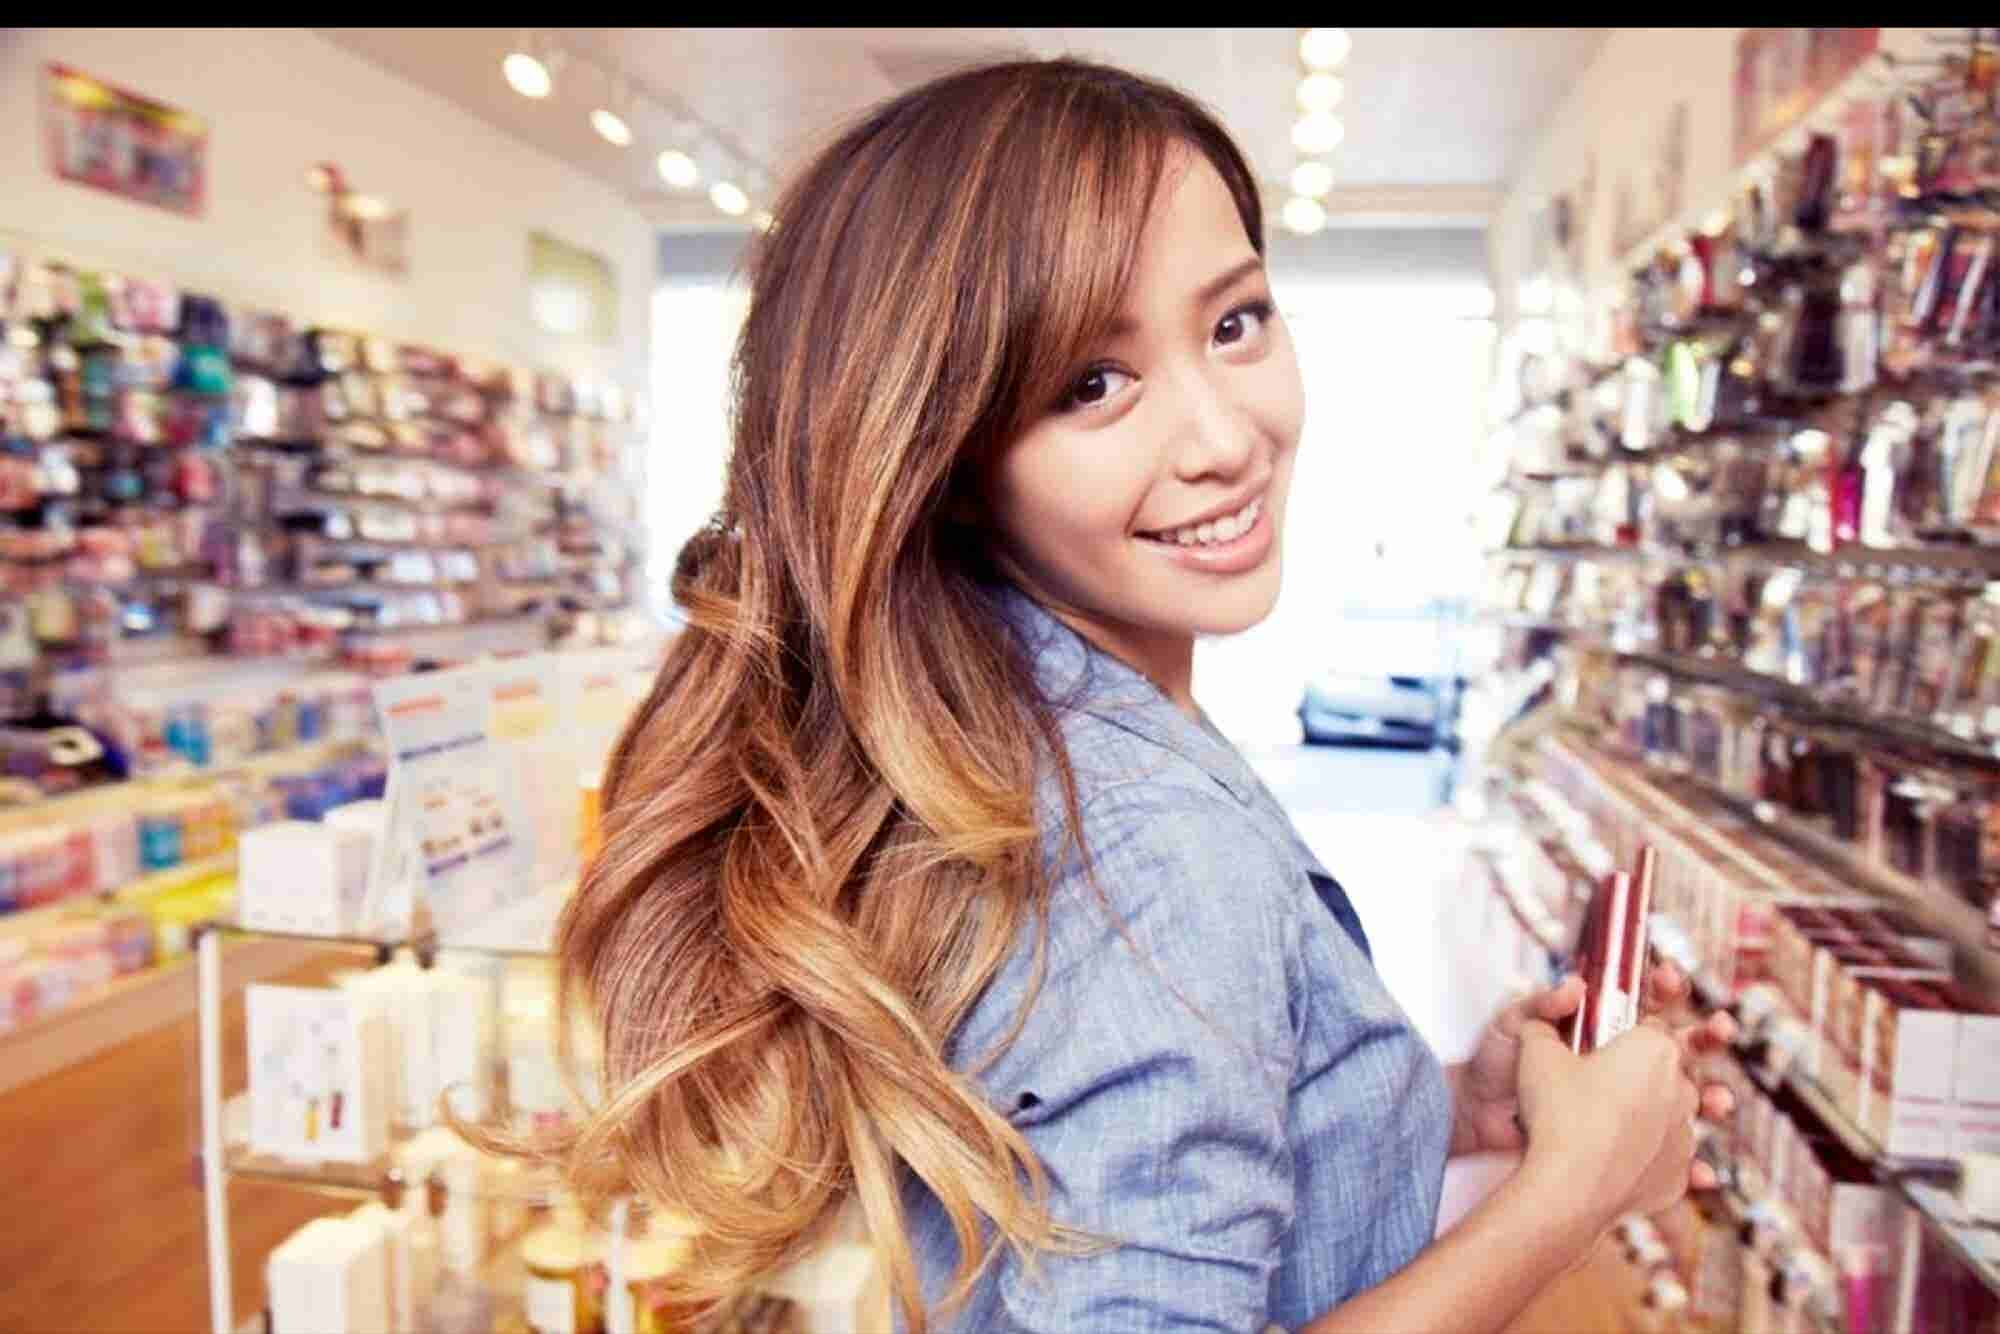 How Ipsy, Michelle Phan's Million-Member Sampling Service, Is Giving Birchbox a Run for Its Money